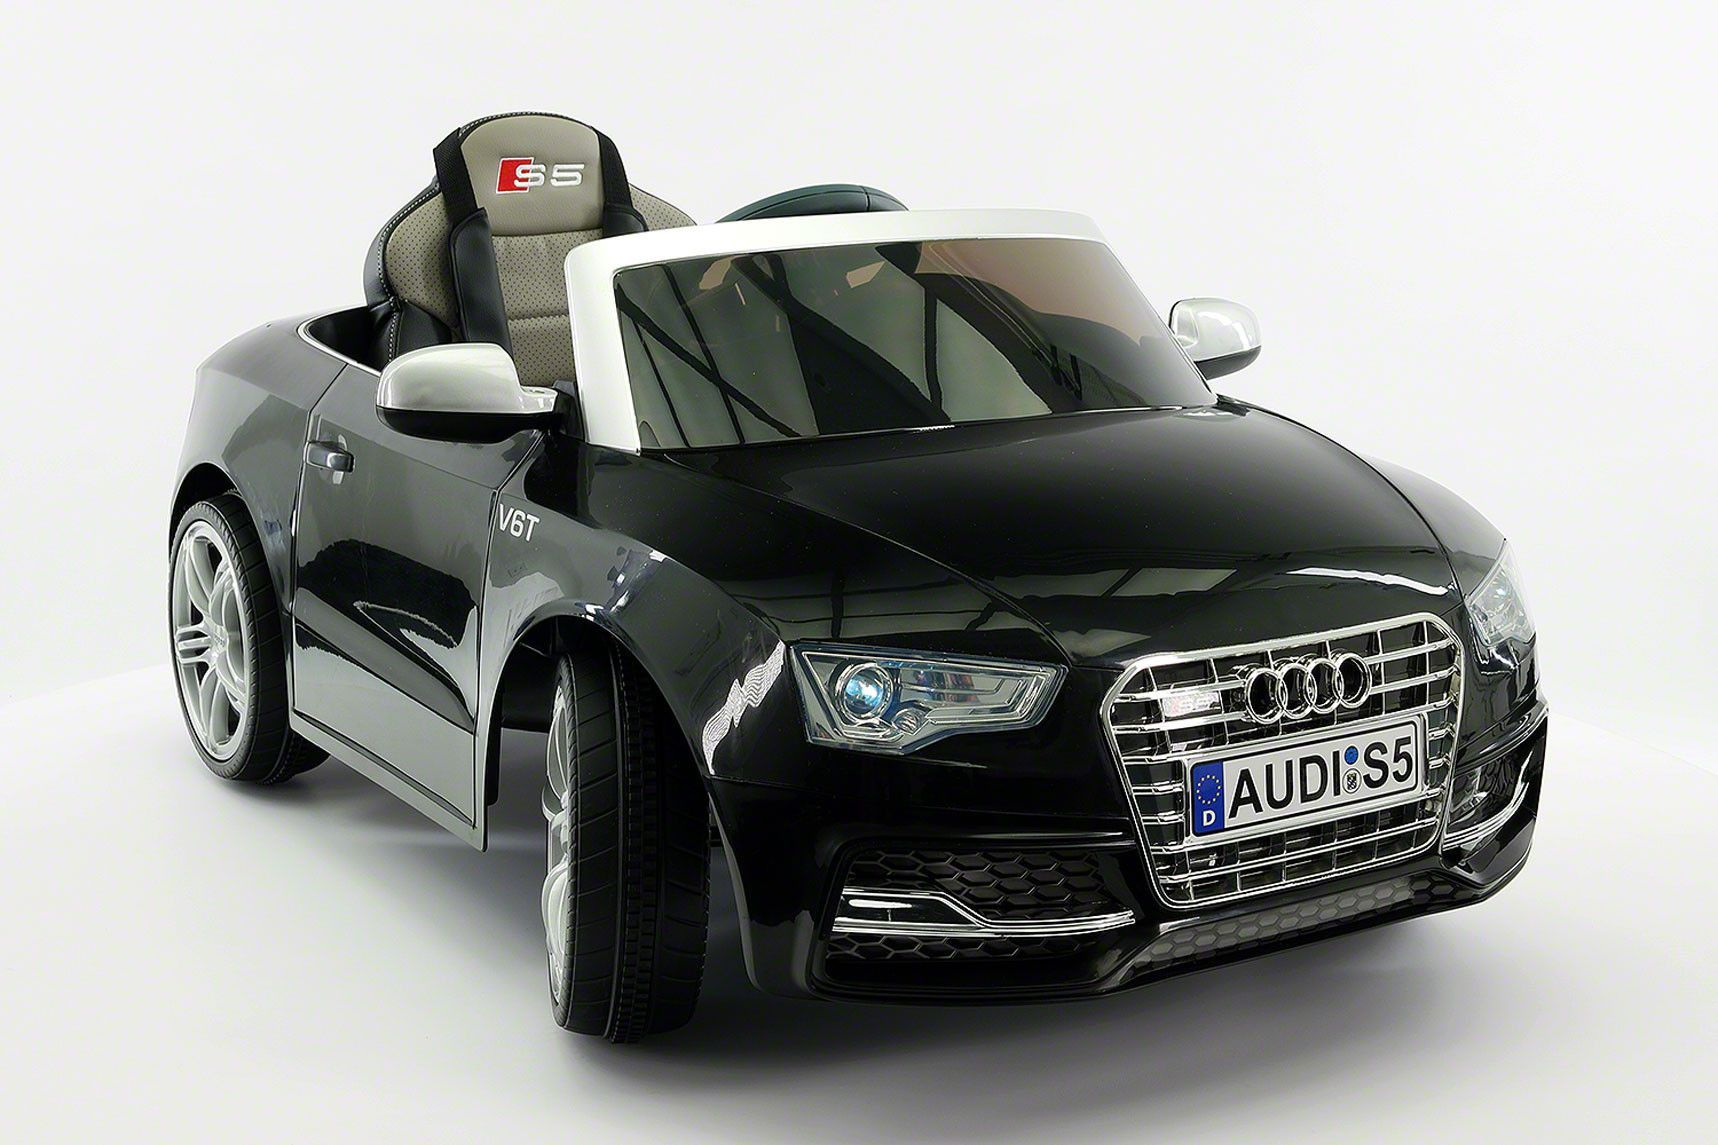 Audi S5 Sport 12V Electric Kids Ride Car with Parental Remote